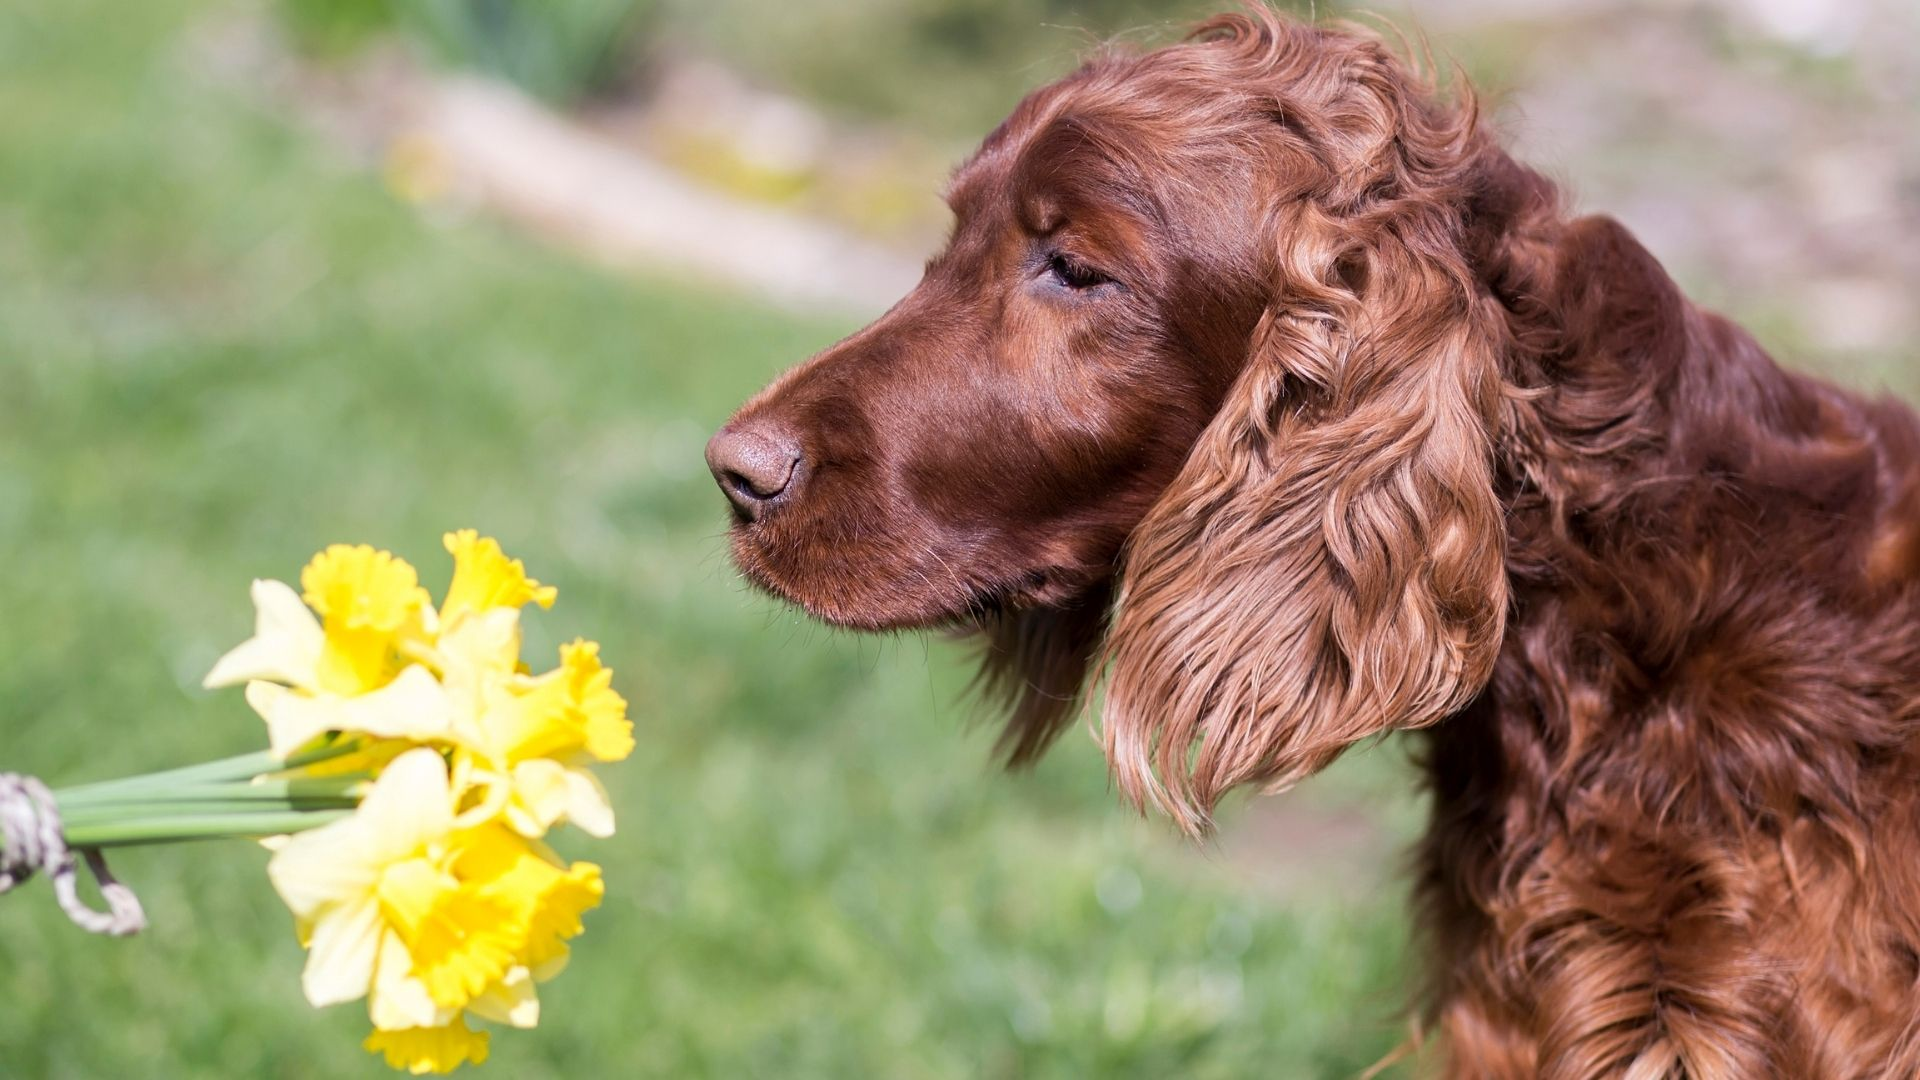 What Can Dogs Smell That Humans Can't?